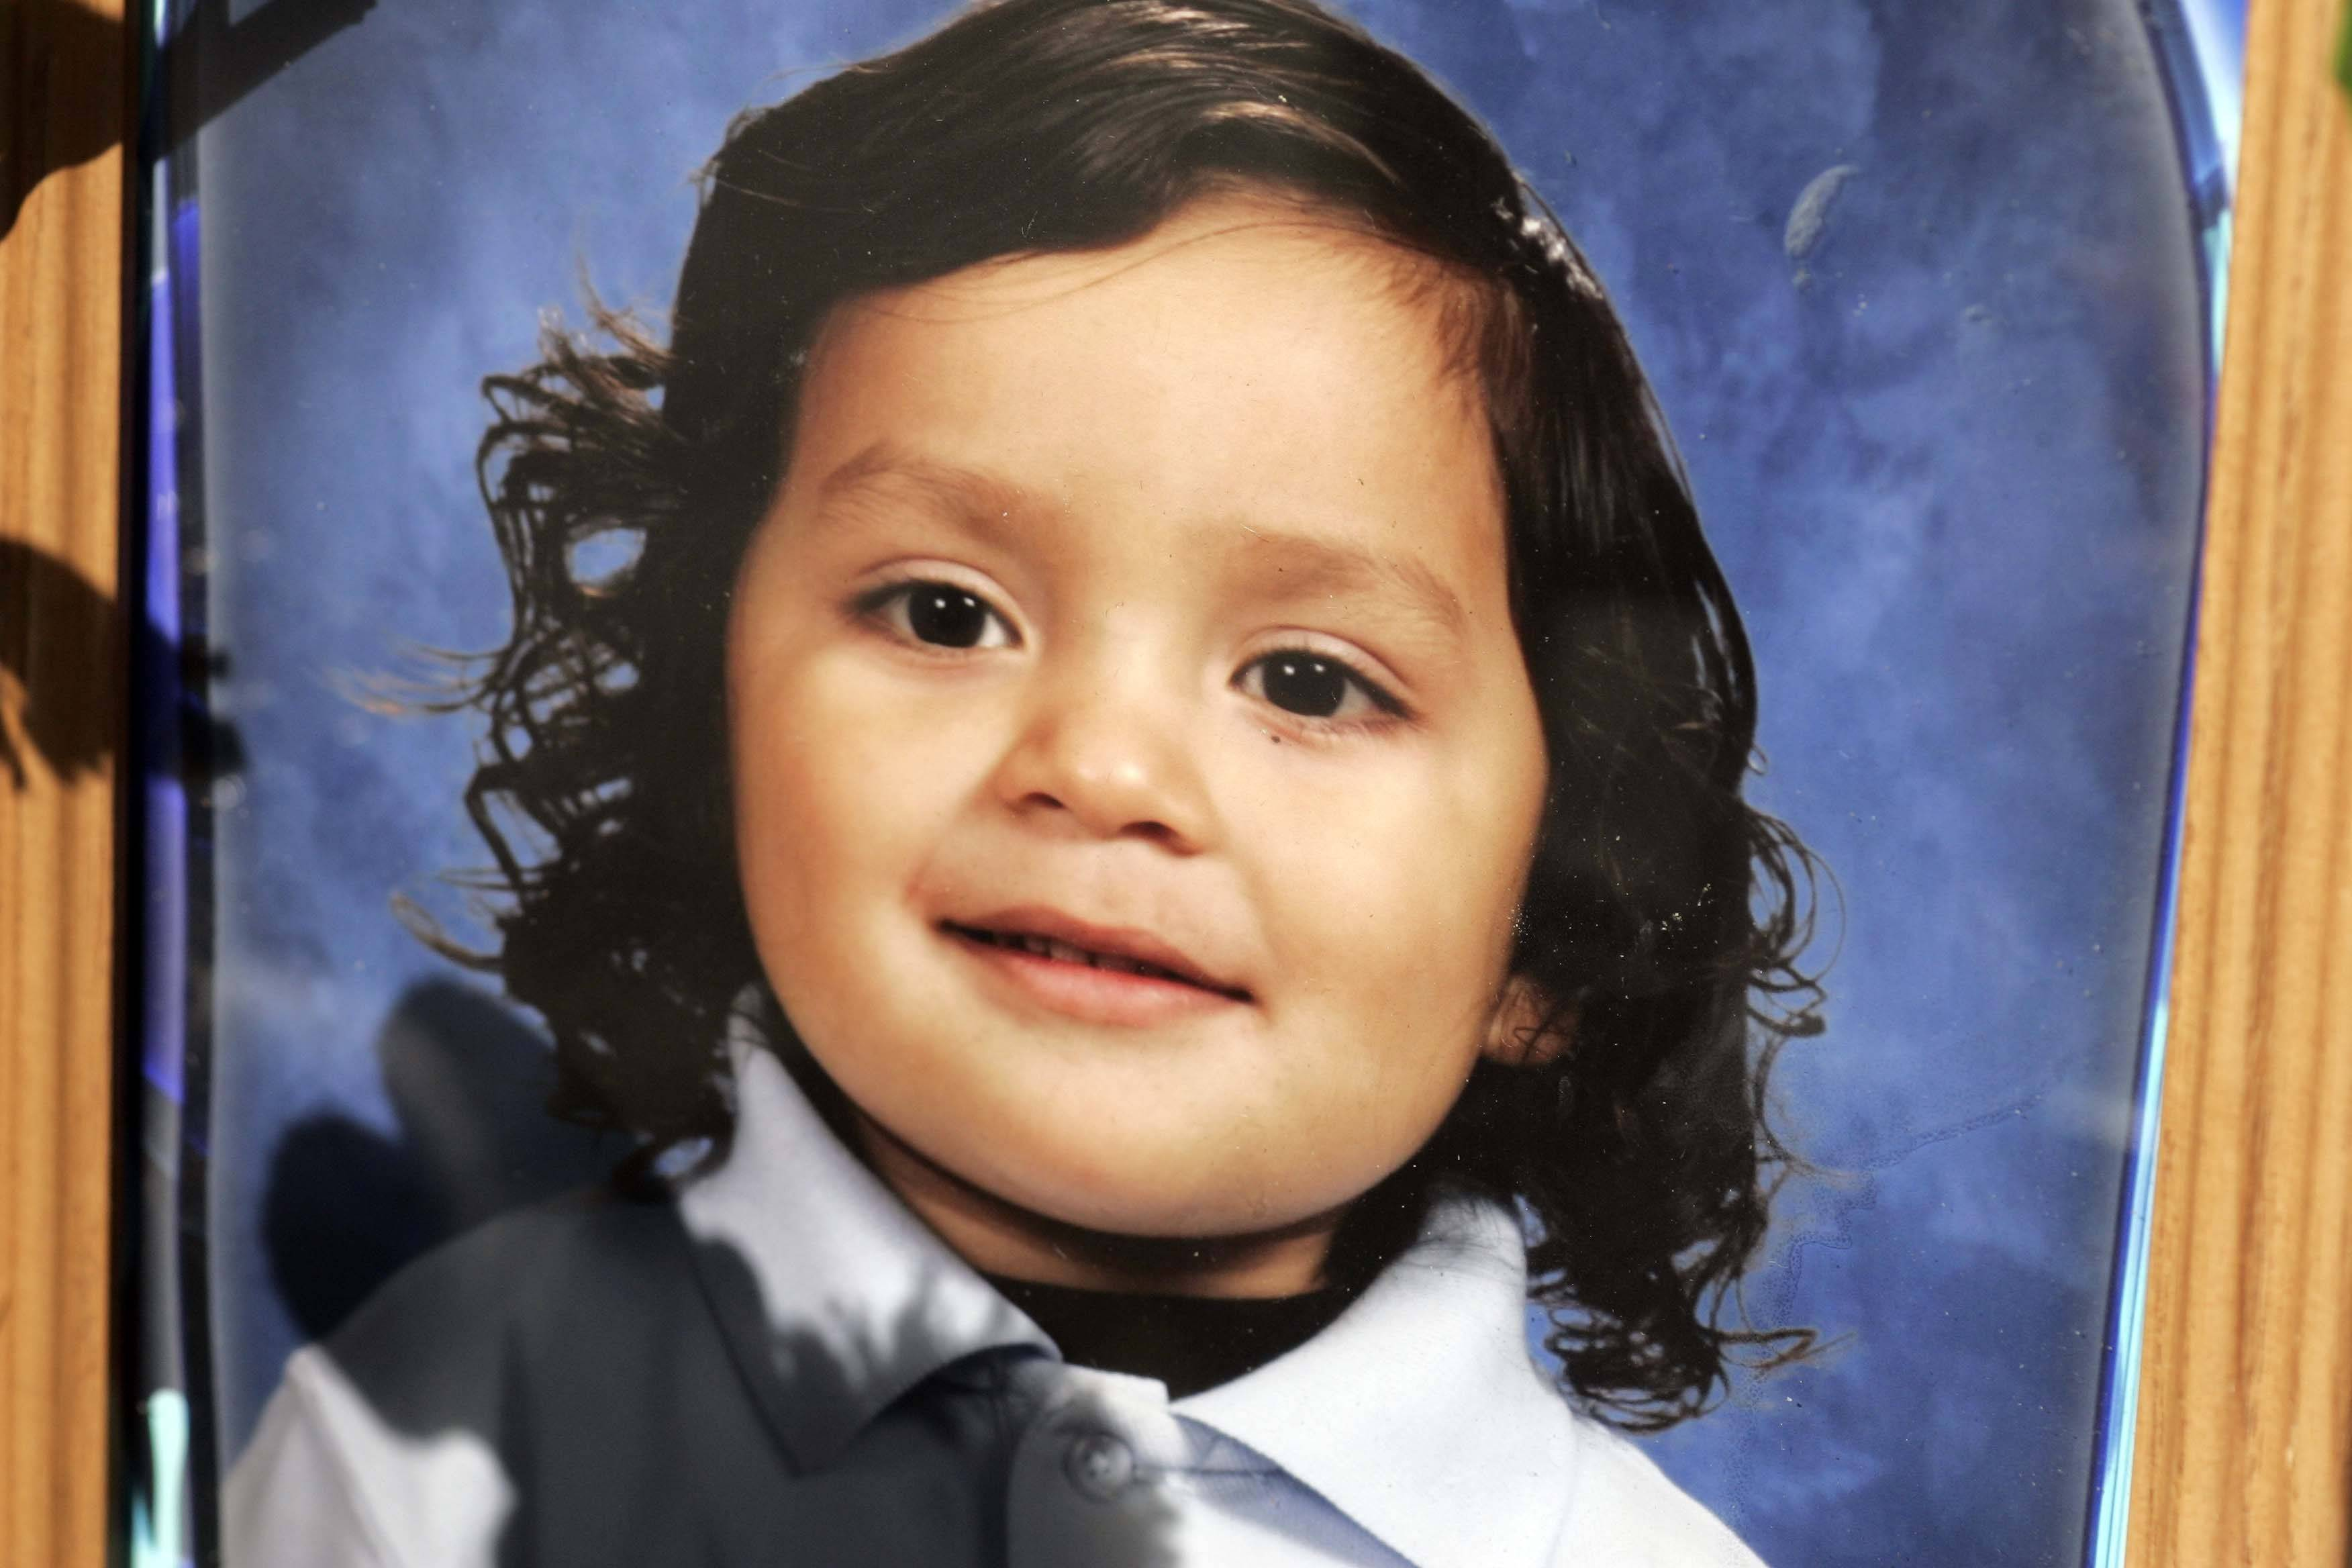 Eric Galarza Jr., 5, was the victim of what Elgin police are calling an Oct. 7 gang shooting.